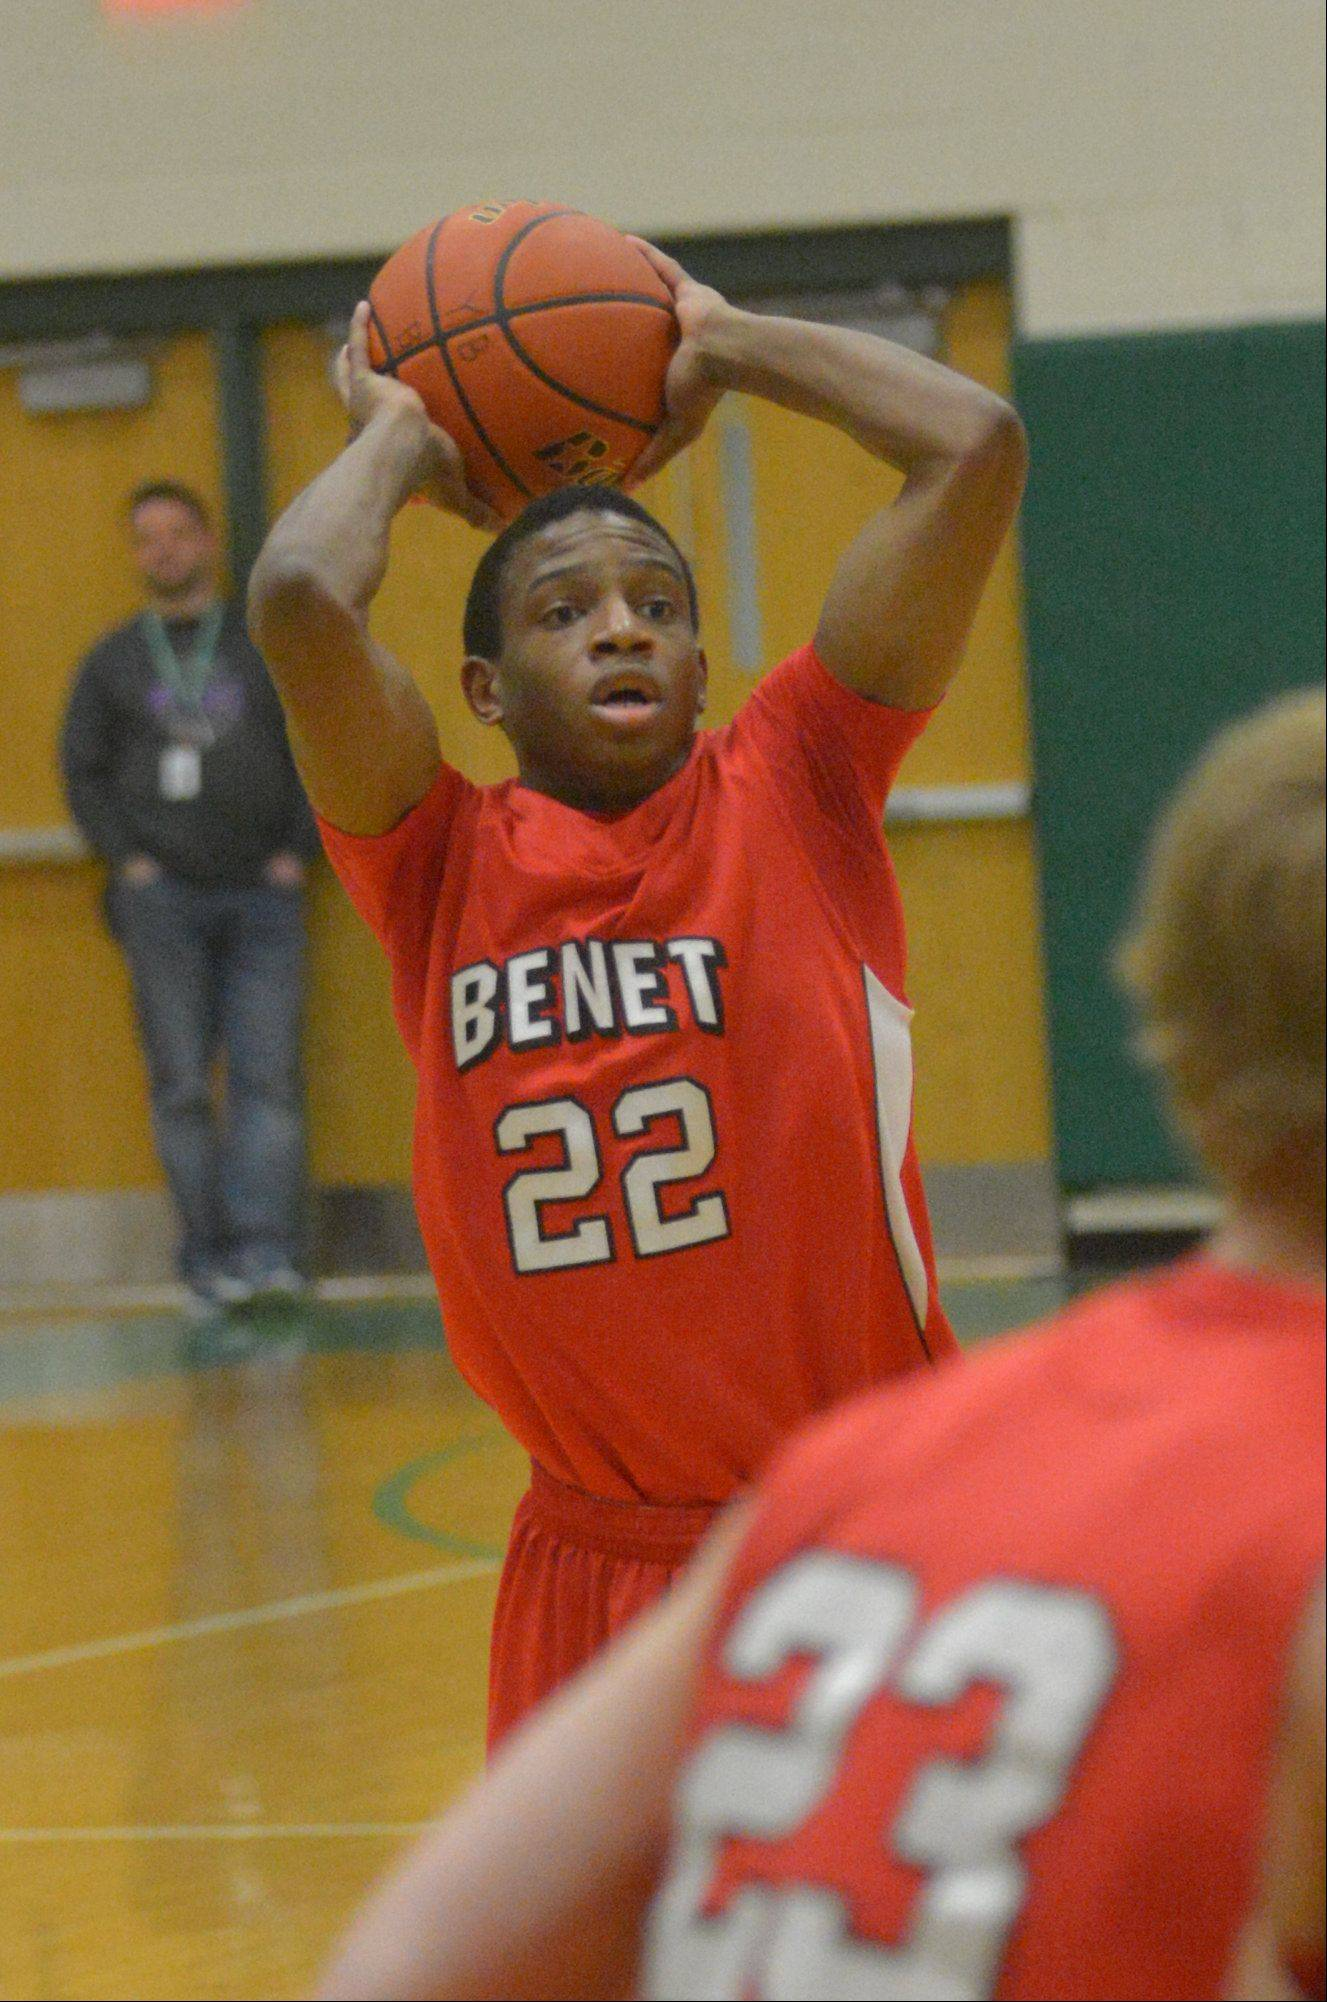 Photos from the Benet Academy at York boys basketball game Friday, Jan. 10.